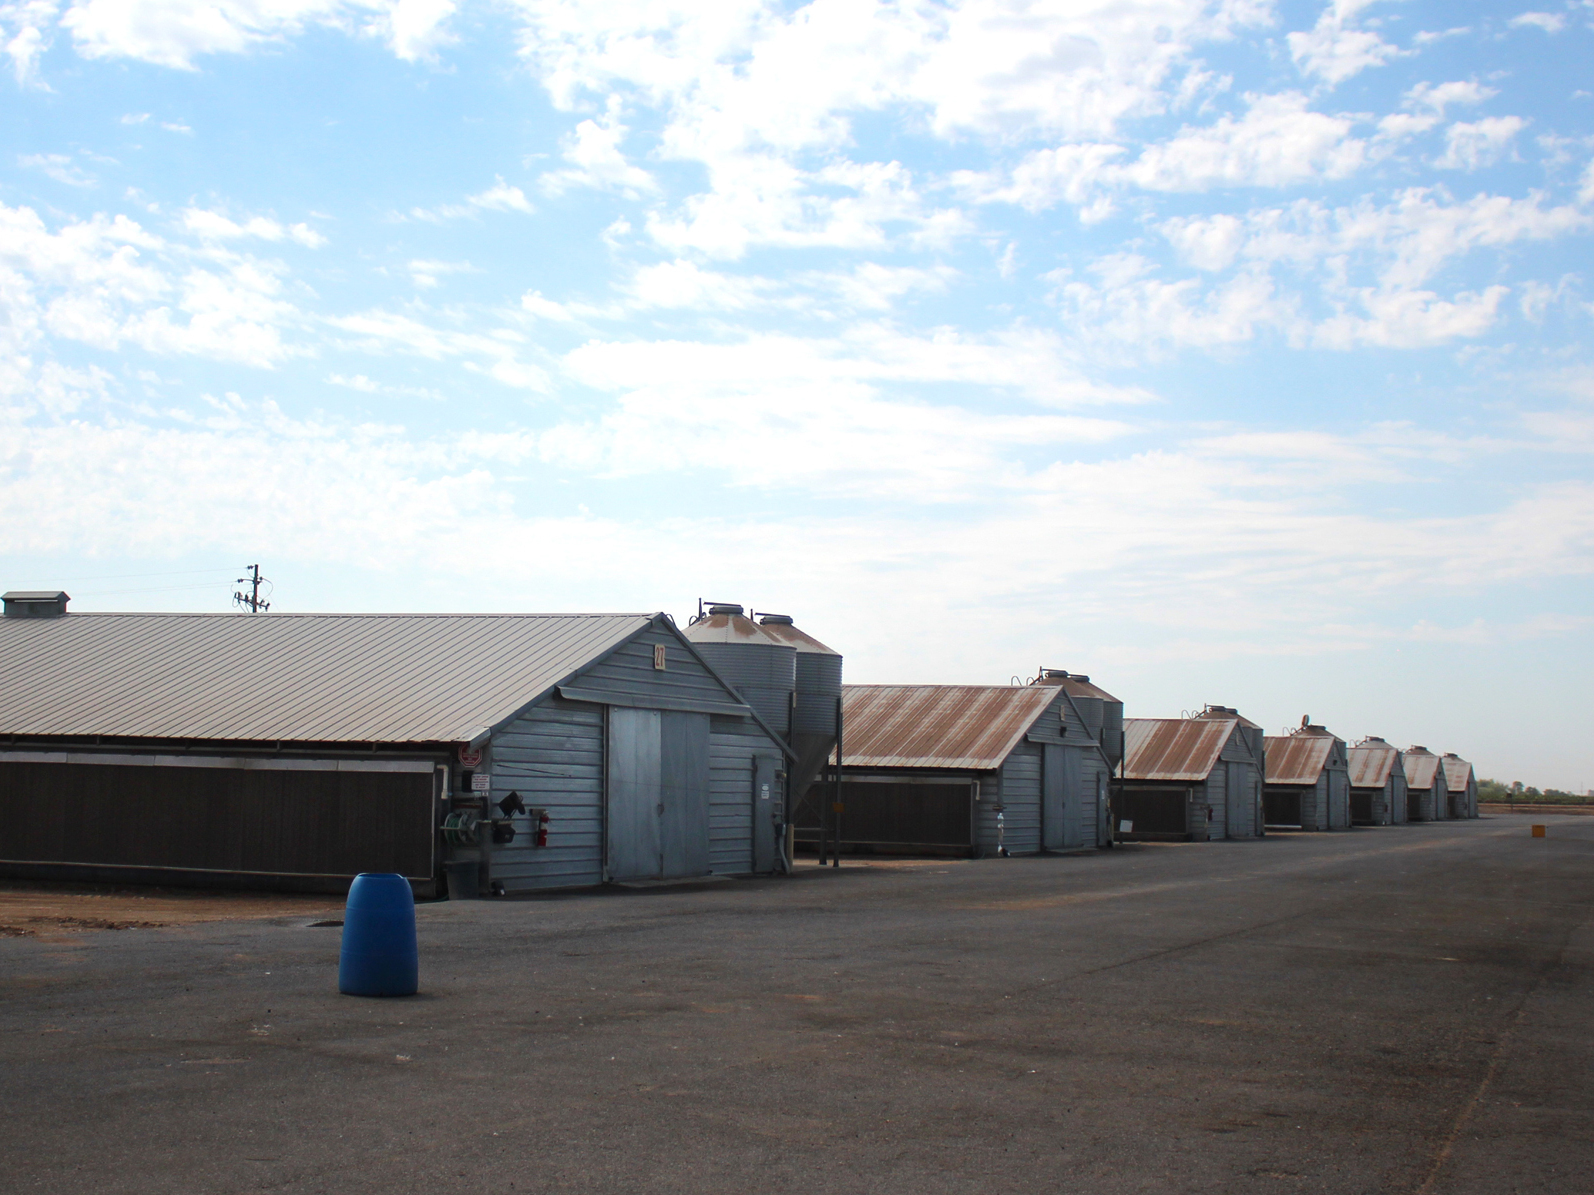 This Foster Farms ranch near Merced, Calif., had higher prevalence for salmonella, so the company started testing everywhere to find it. It turned out the contamination was concentrated inside the houses. Photo: Dan Charles/NPR